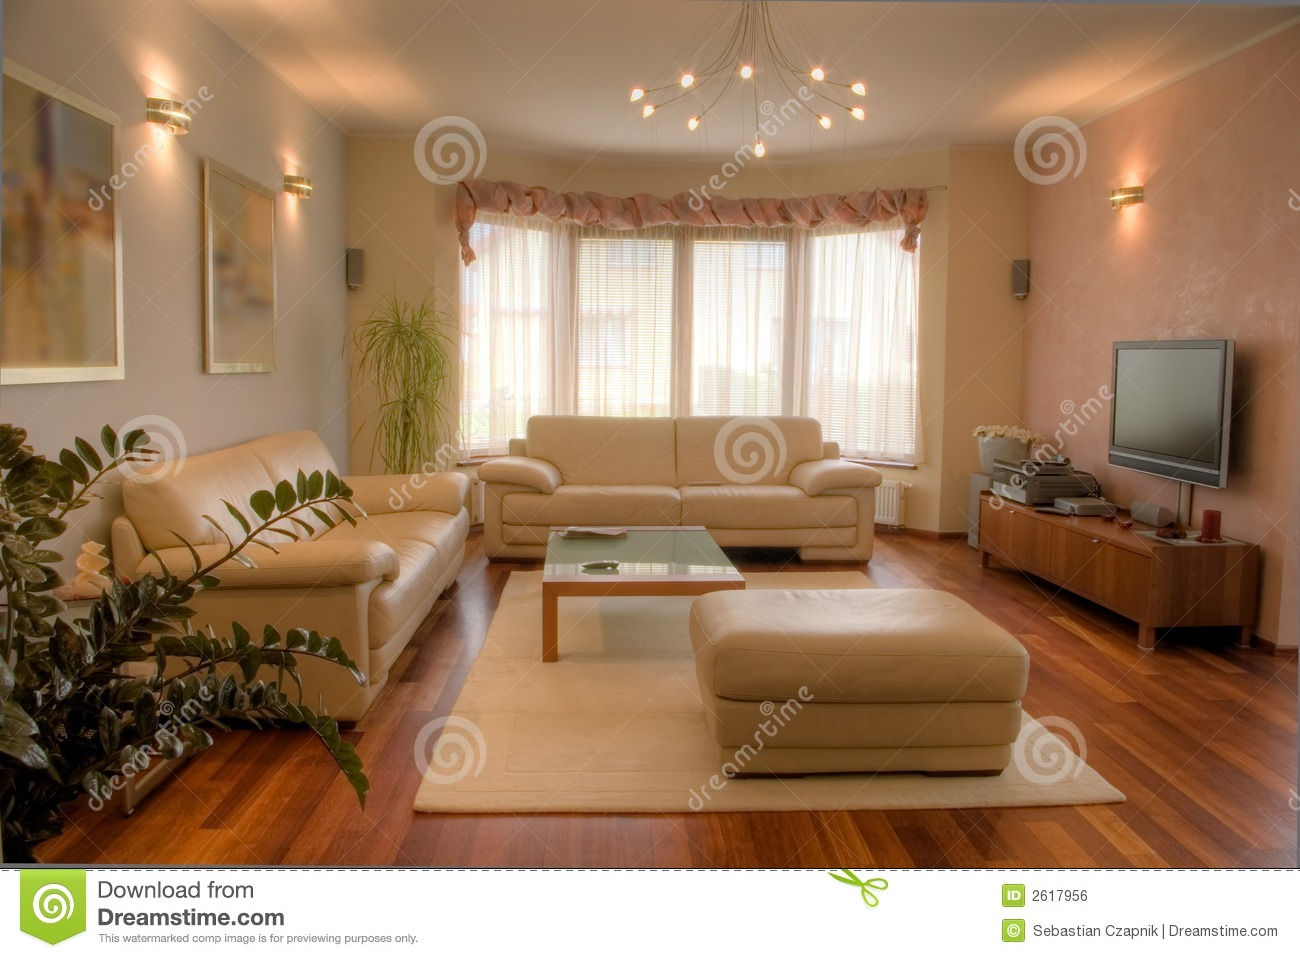 Int rieur la maison moderne photo stock image 2617956 Interieur de maison contemporaine photo